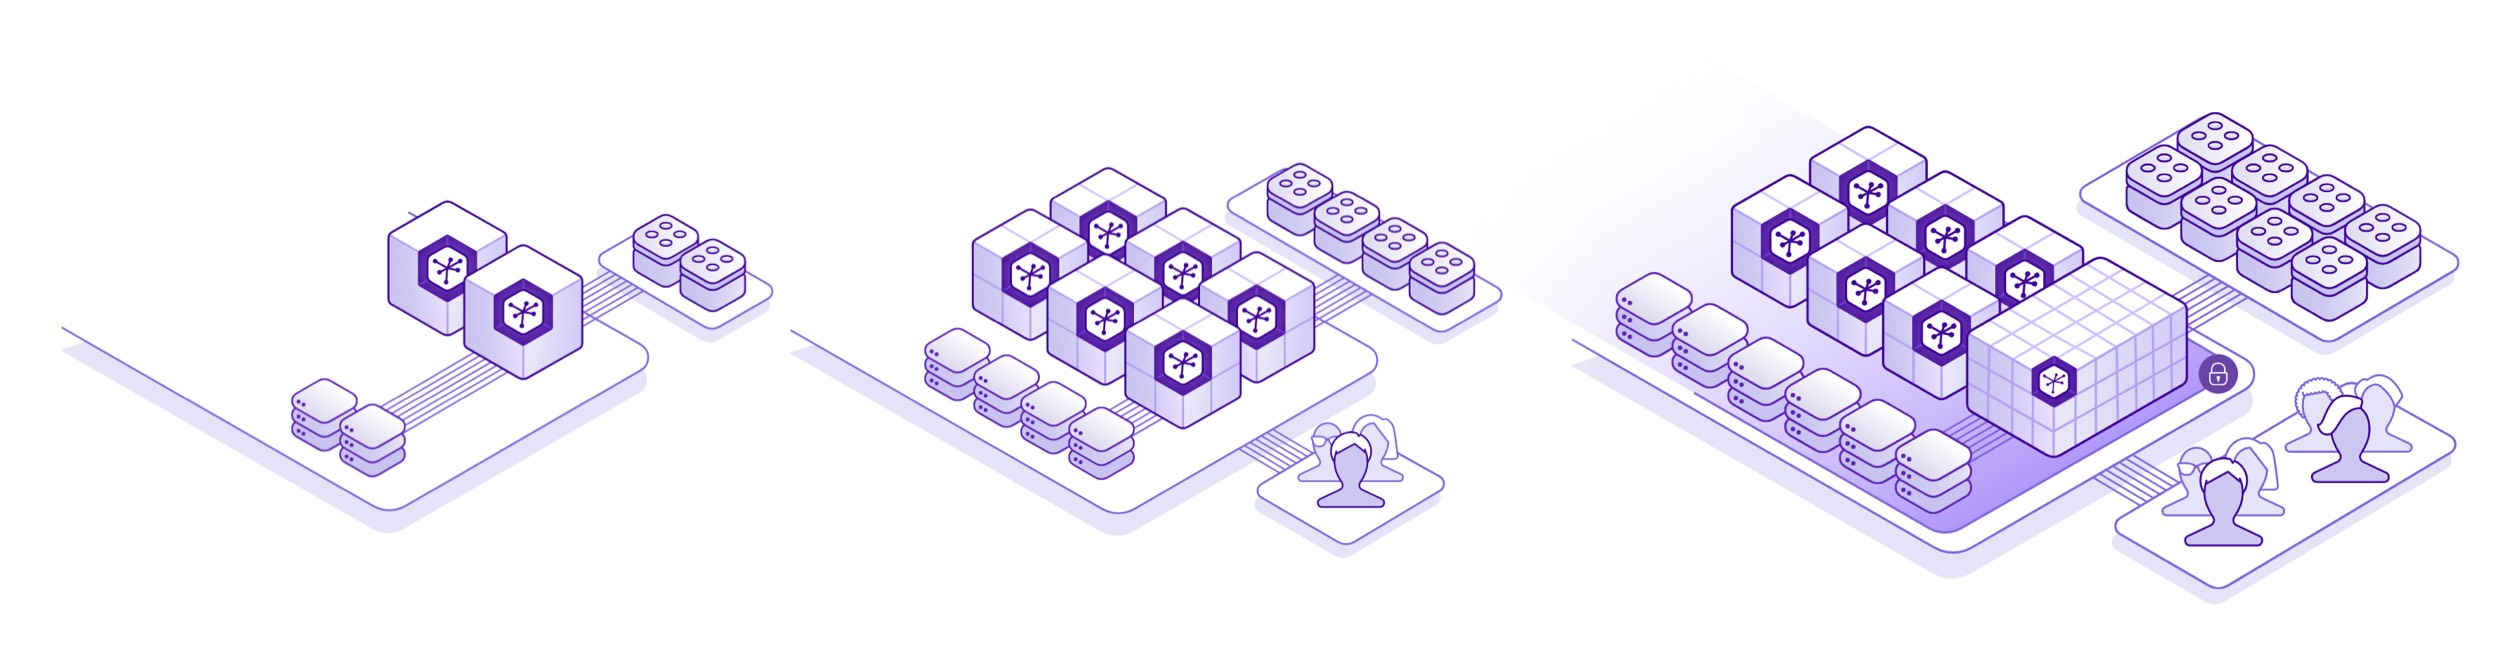 A visualization of the options for growth with Heroku, featuring databases, apps, and teams